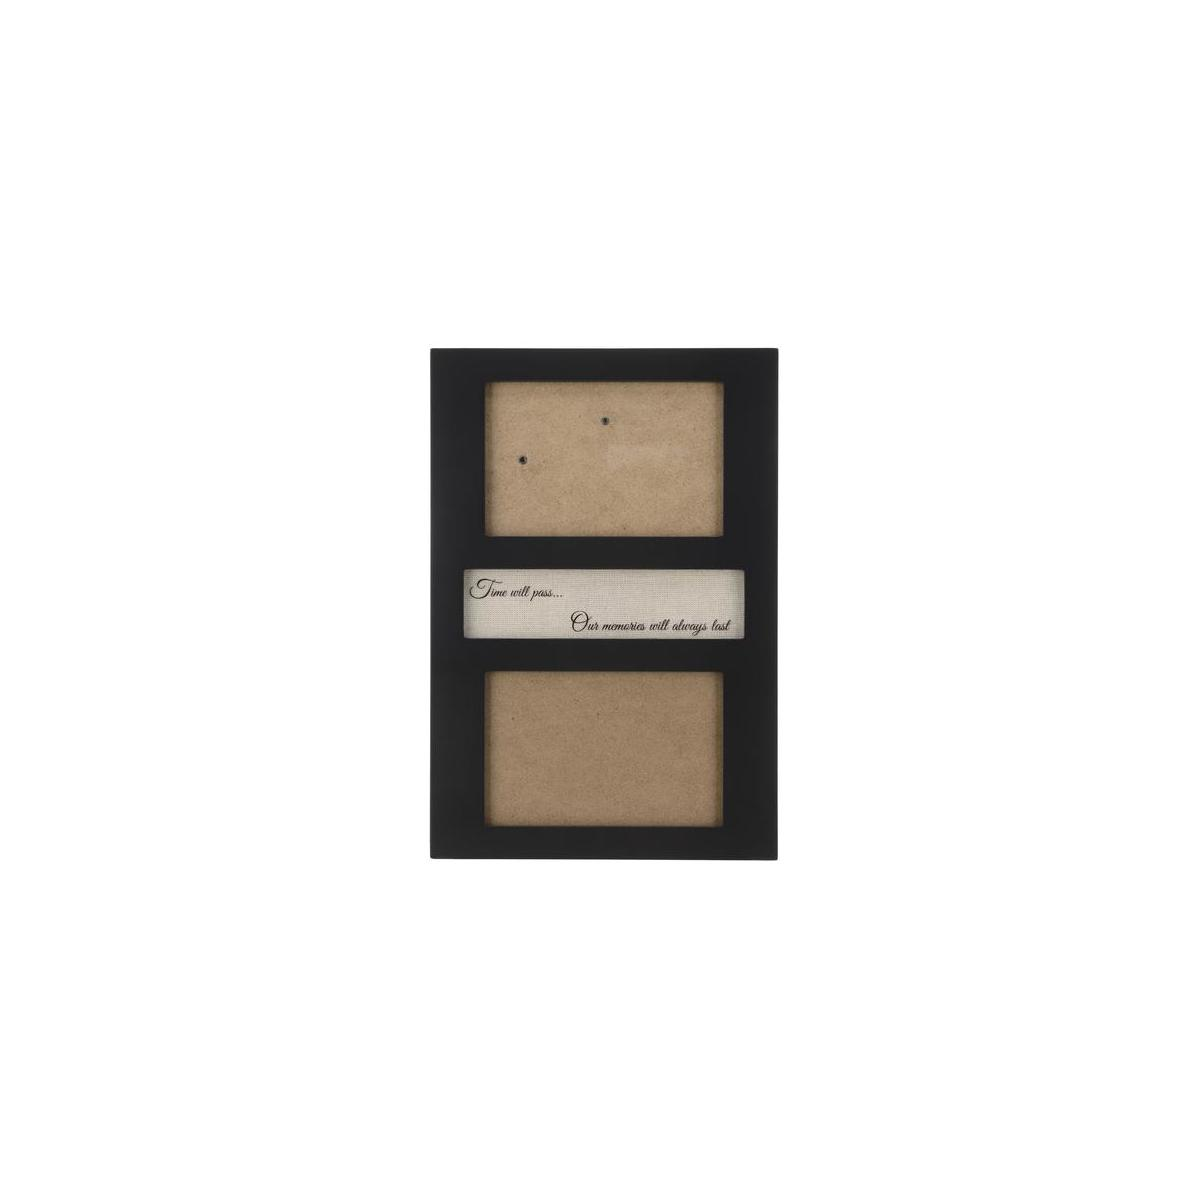 Precise Obsession 4x6 Picture Frame for Desk or Wall, Dual MDF Wood Photograph Frame with Heart Warming Quote for Near and Dear Memories to Cherish, Black